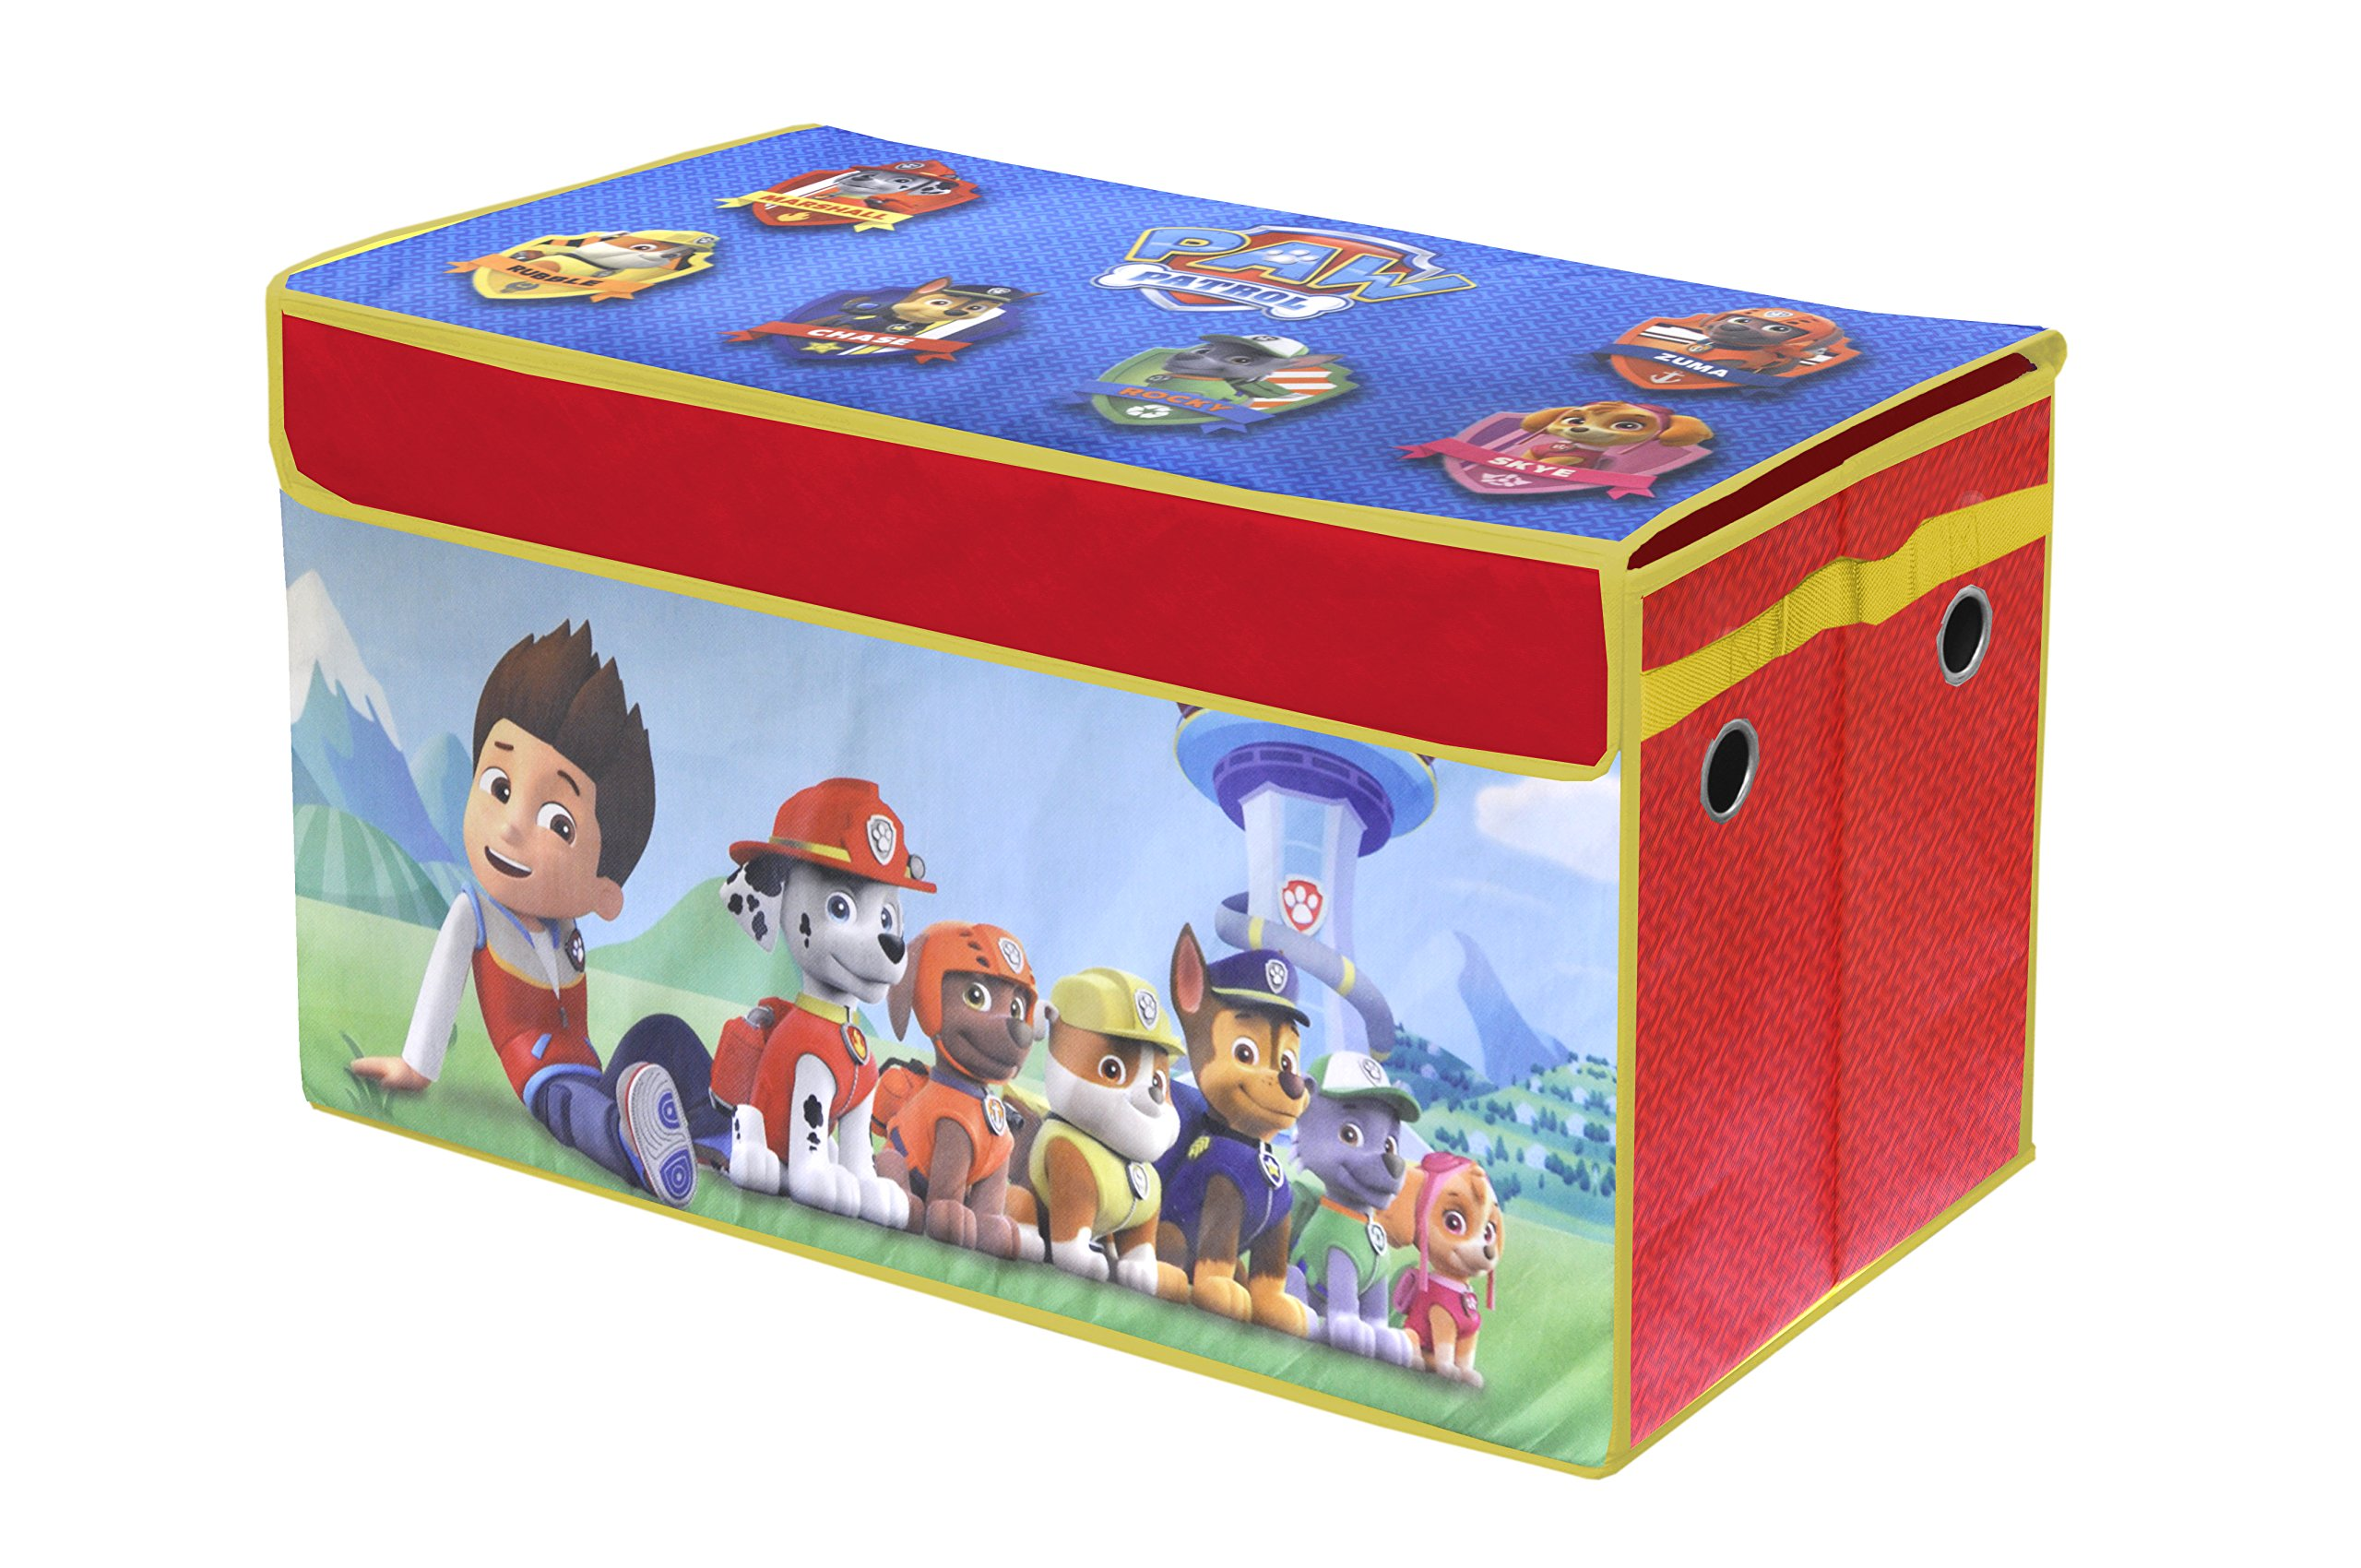 Nickelodeon Paw Patrol Collapsible Storage Trunk by Nickelodeon